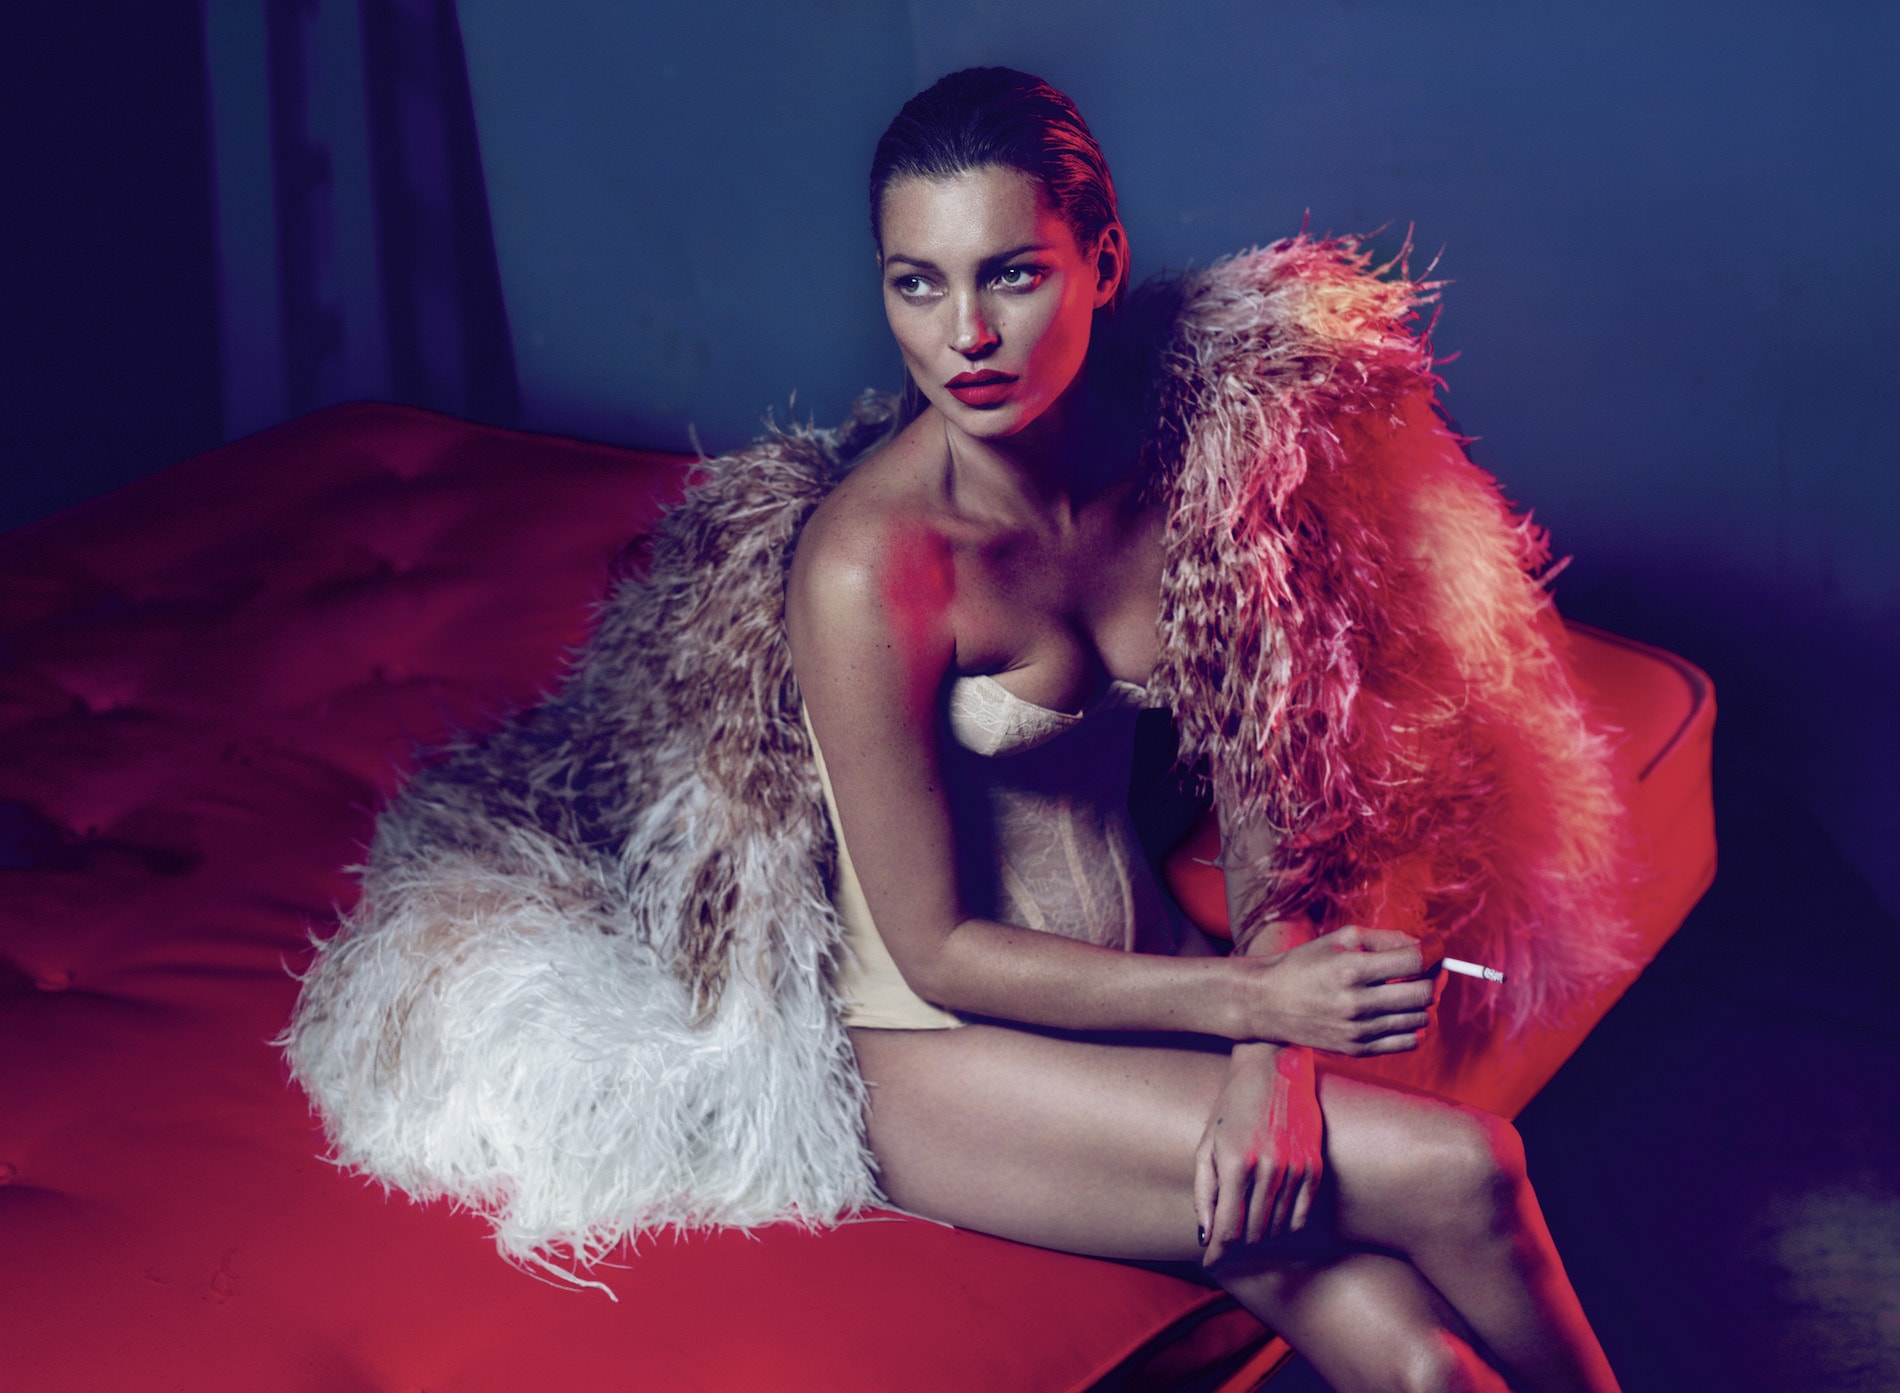 Dynamic Duo: The powerful women of Mert and Marcus